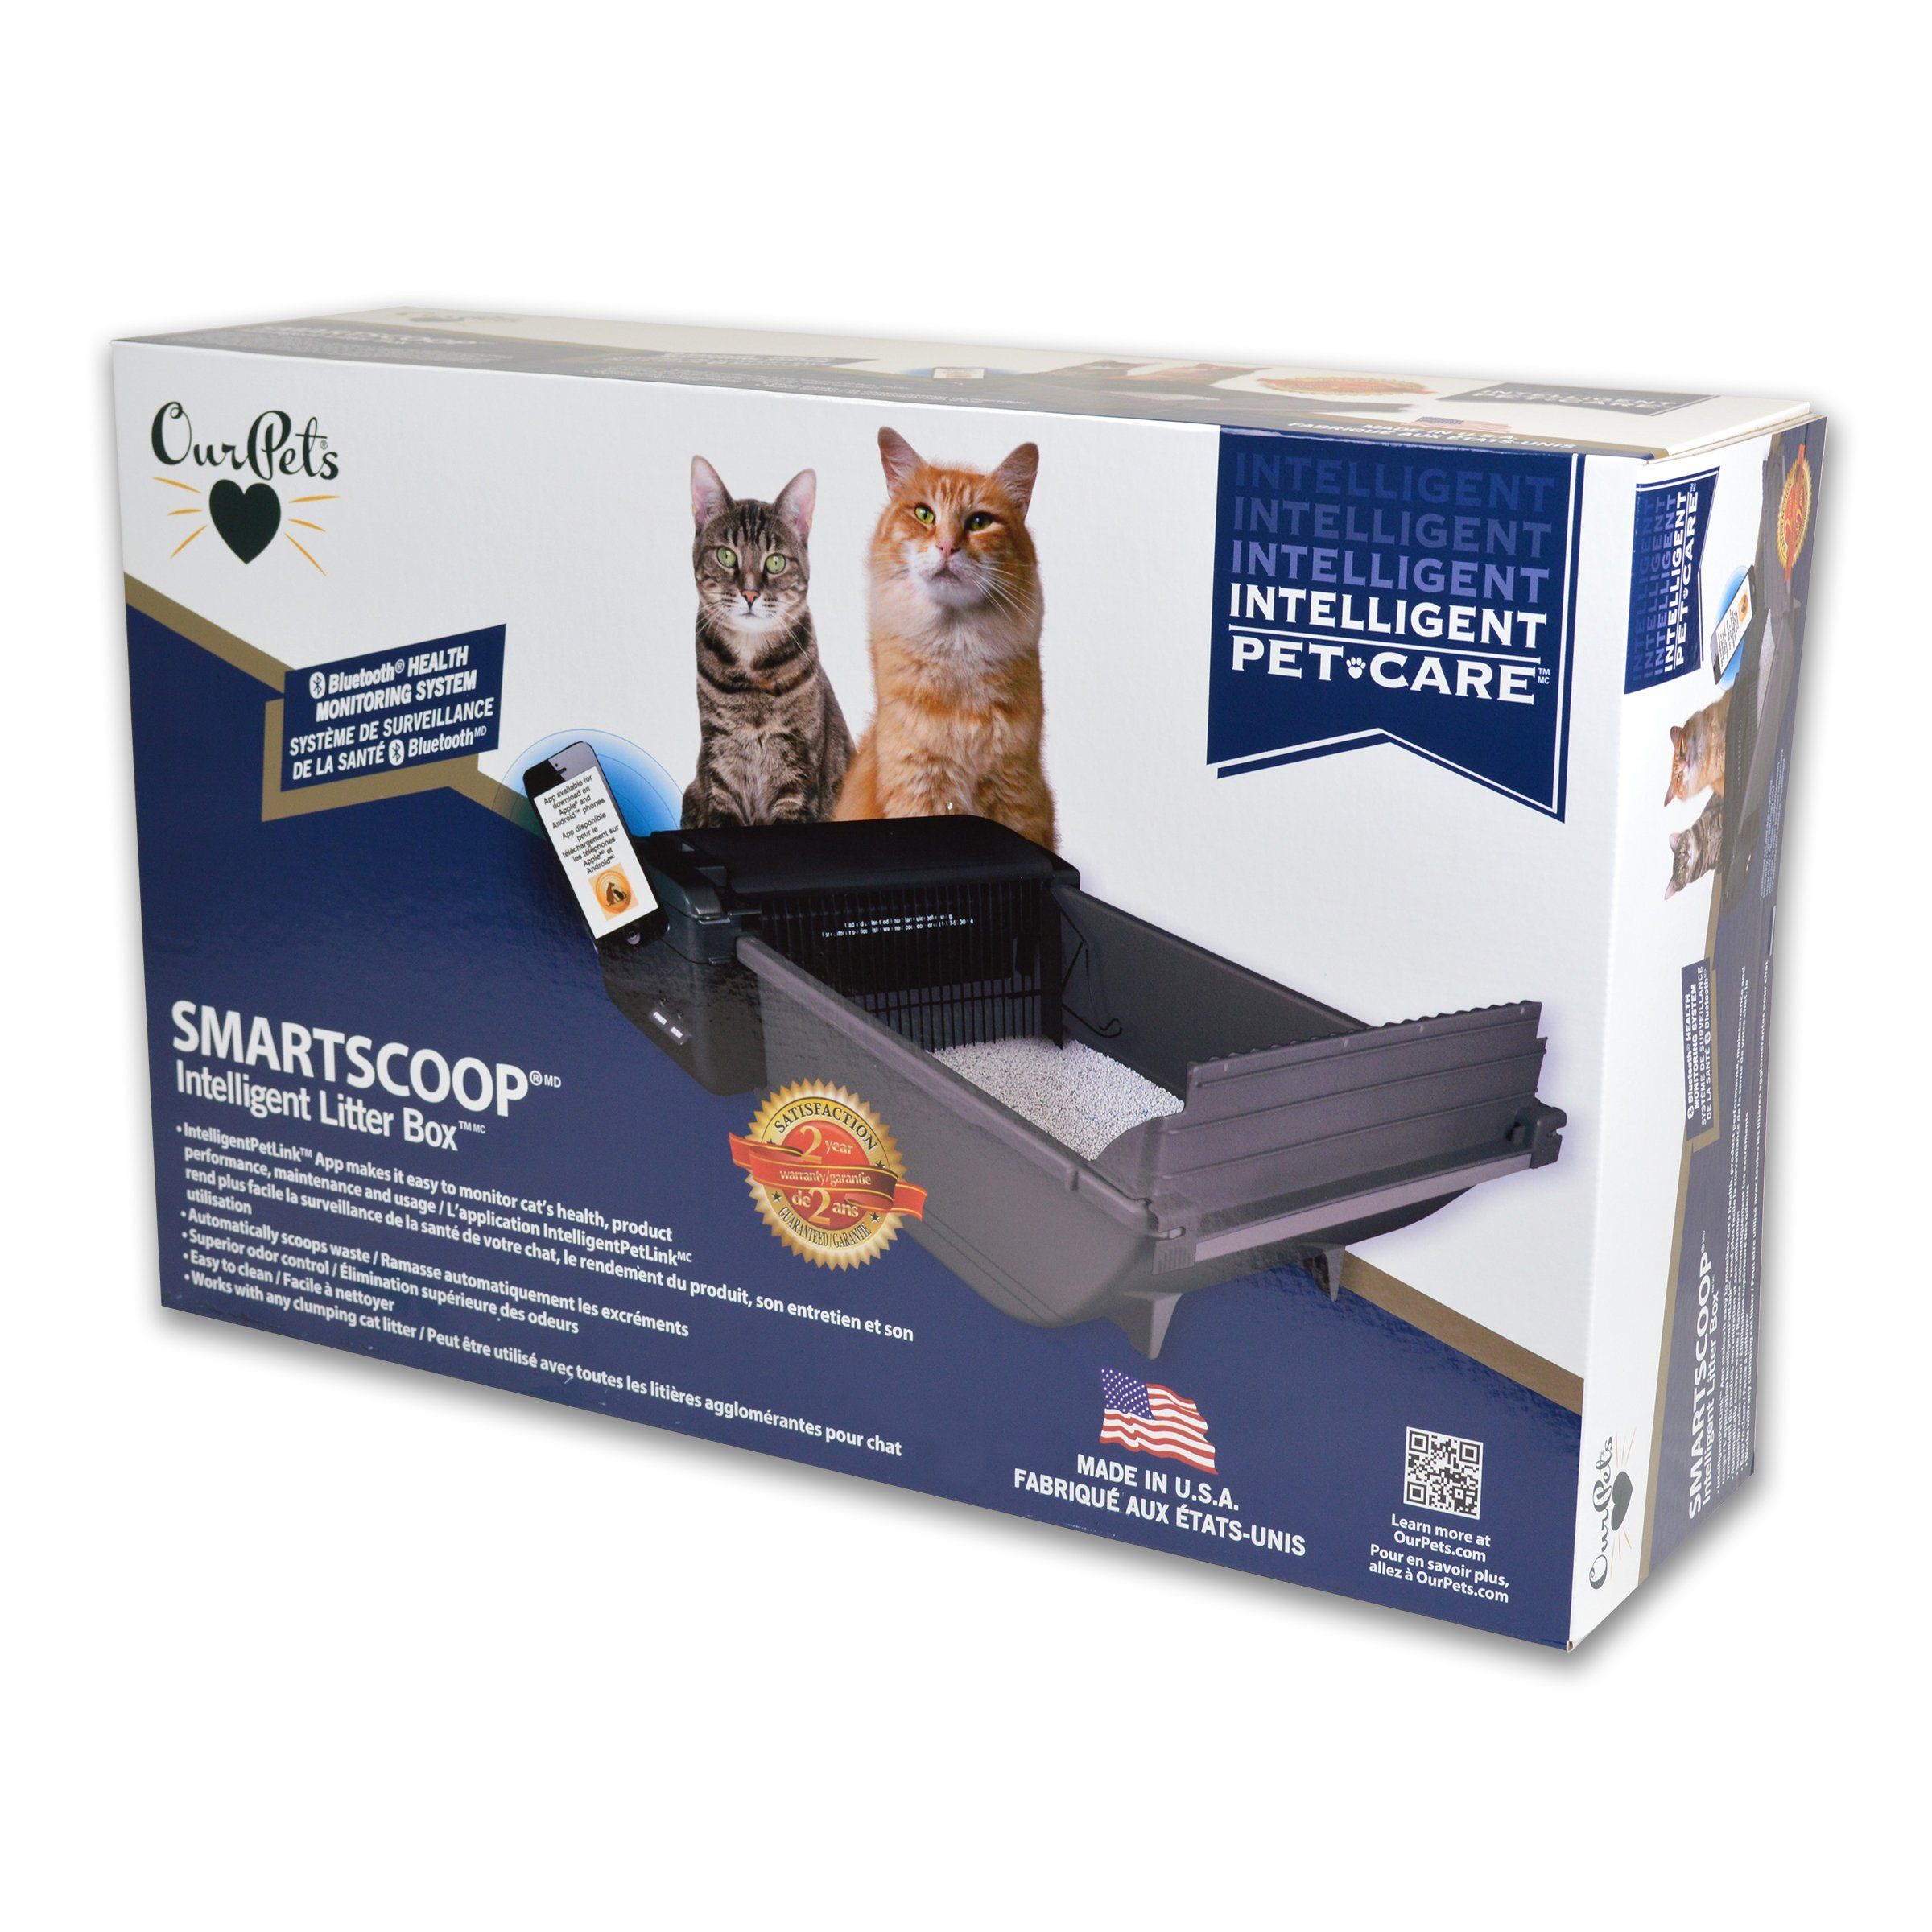 Our Pets Smart Scoop Intelligent Bluetooth Litter Box Self